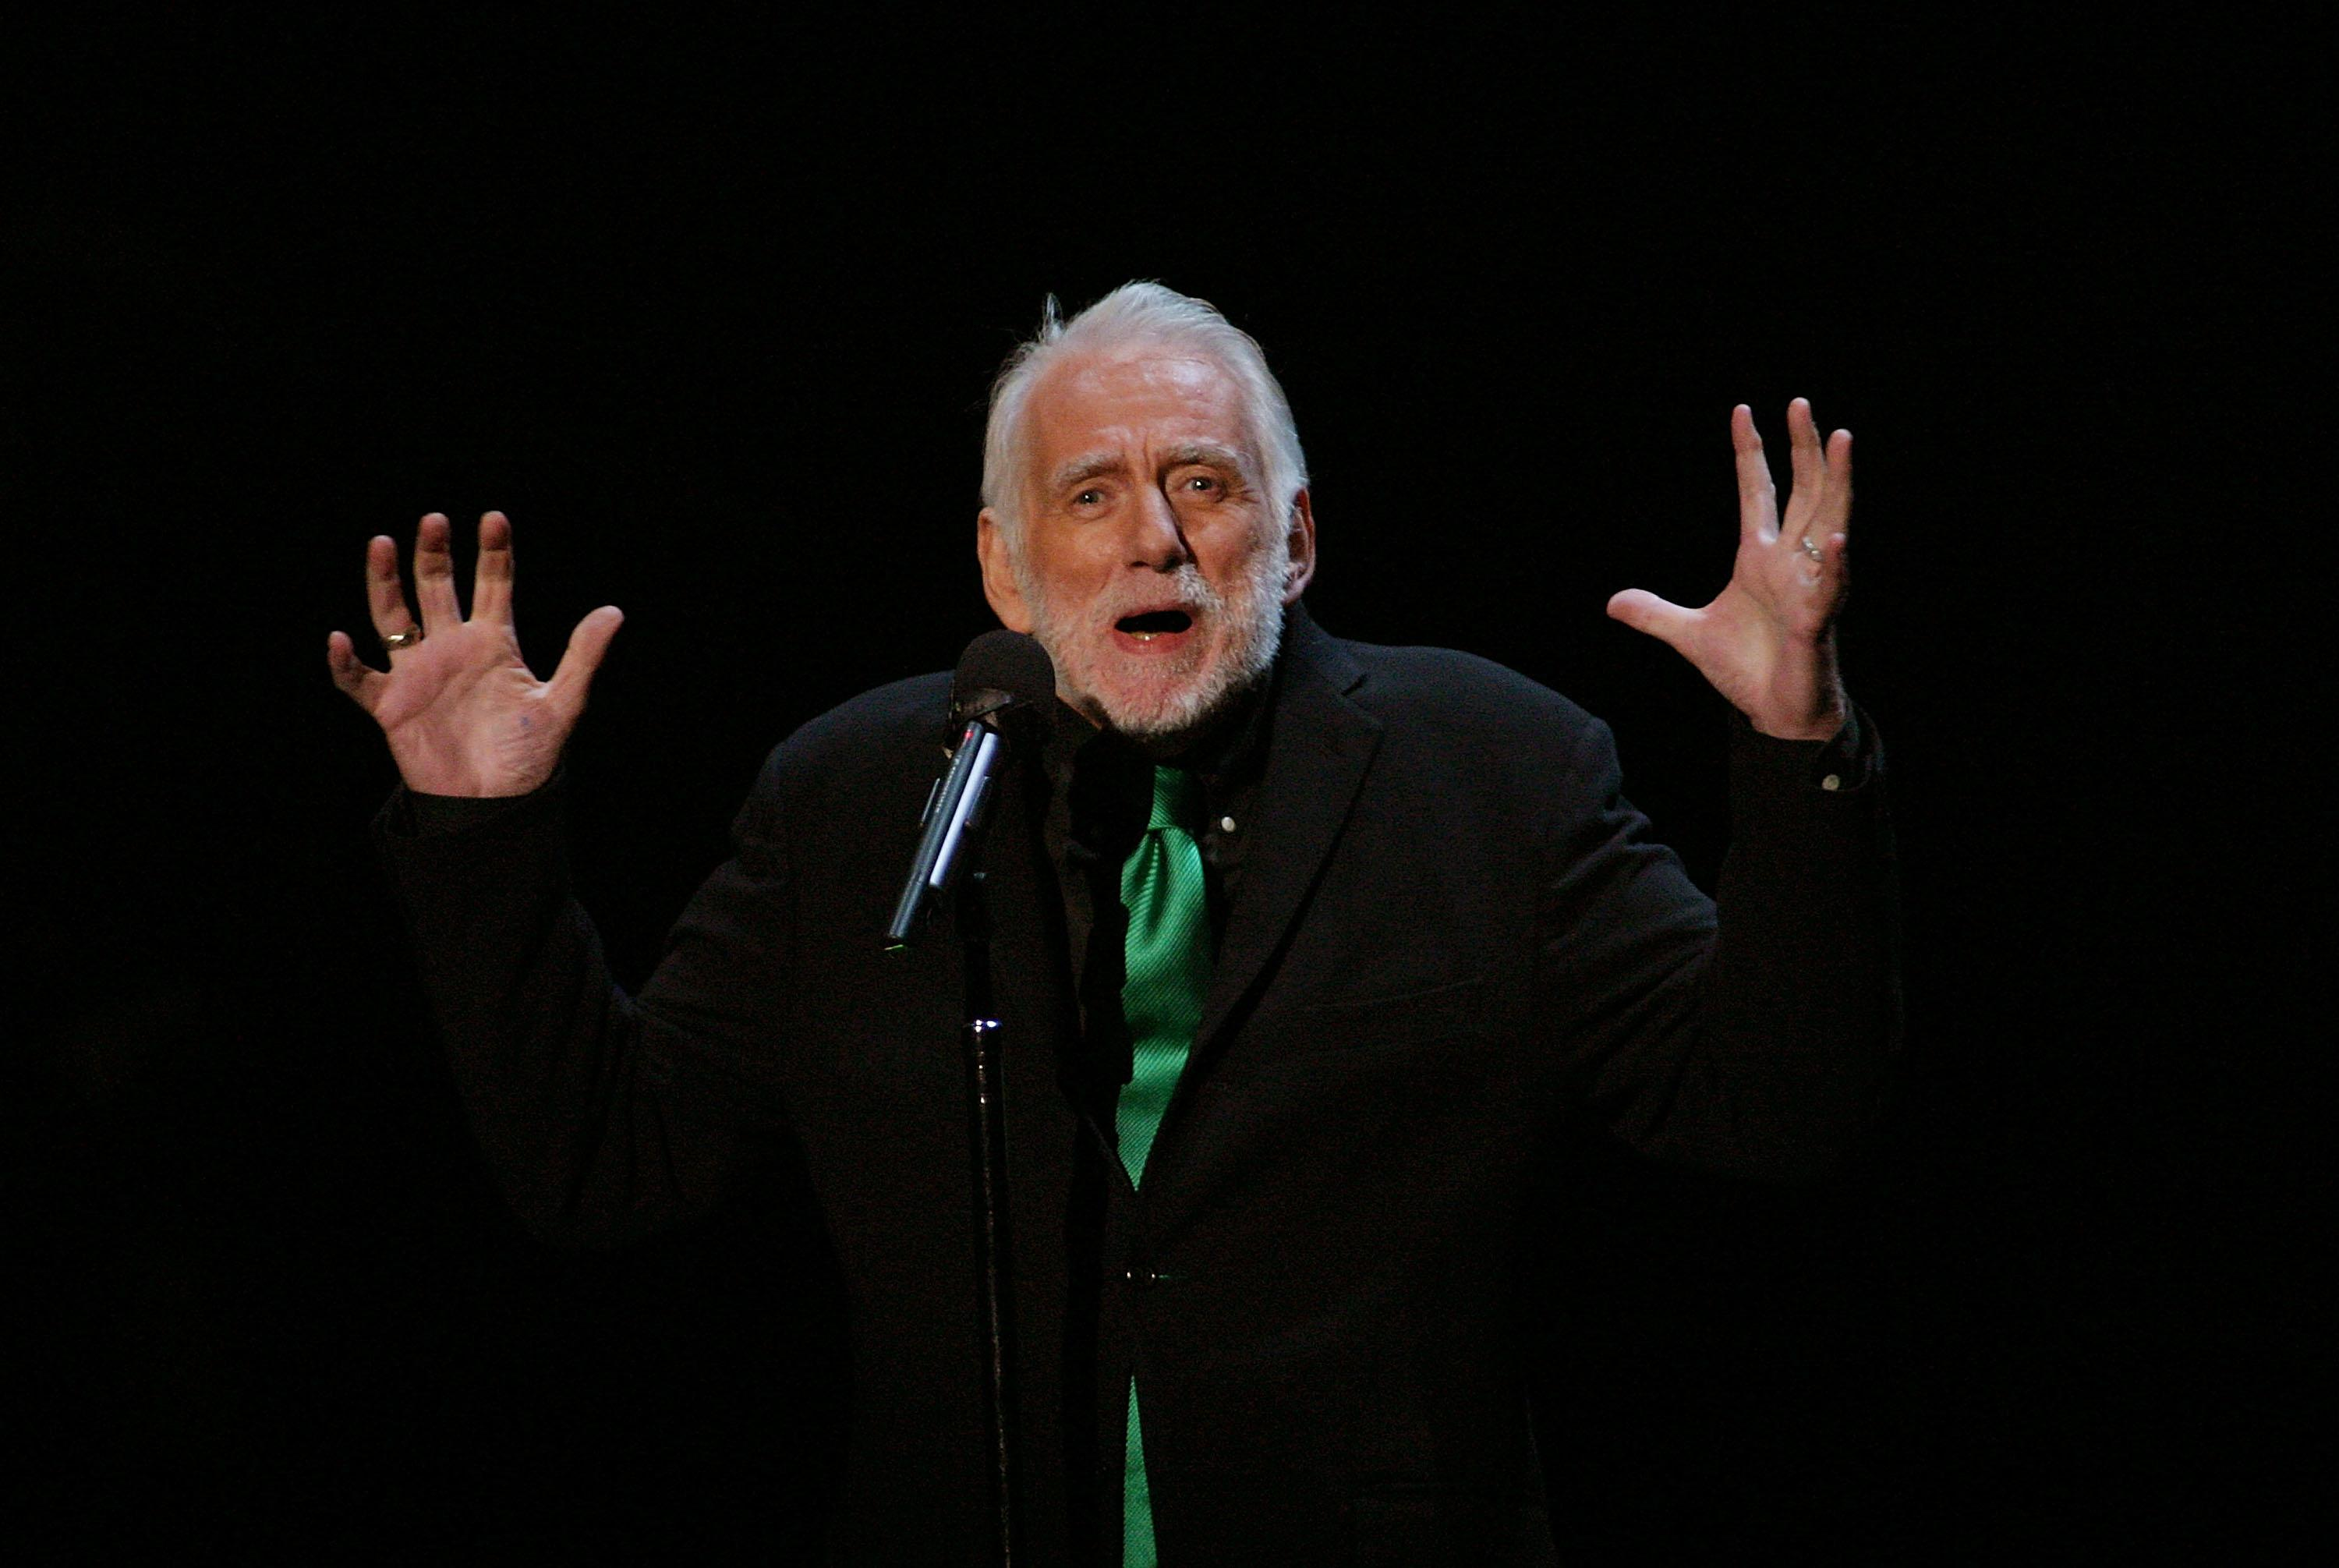 Poet and performer Rod McKuen dies at 81